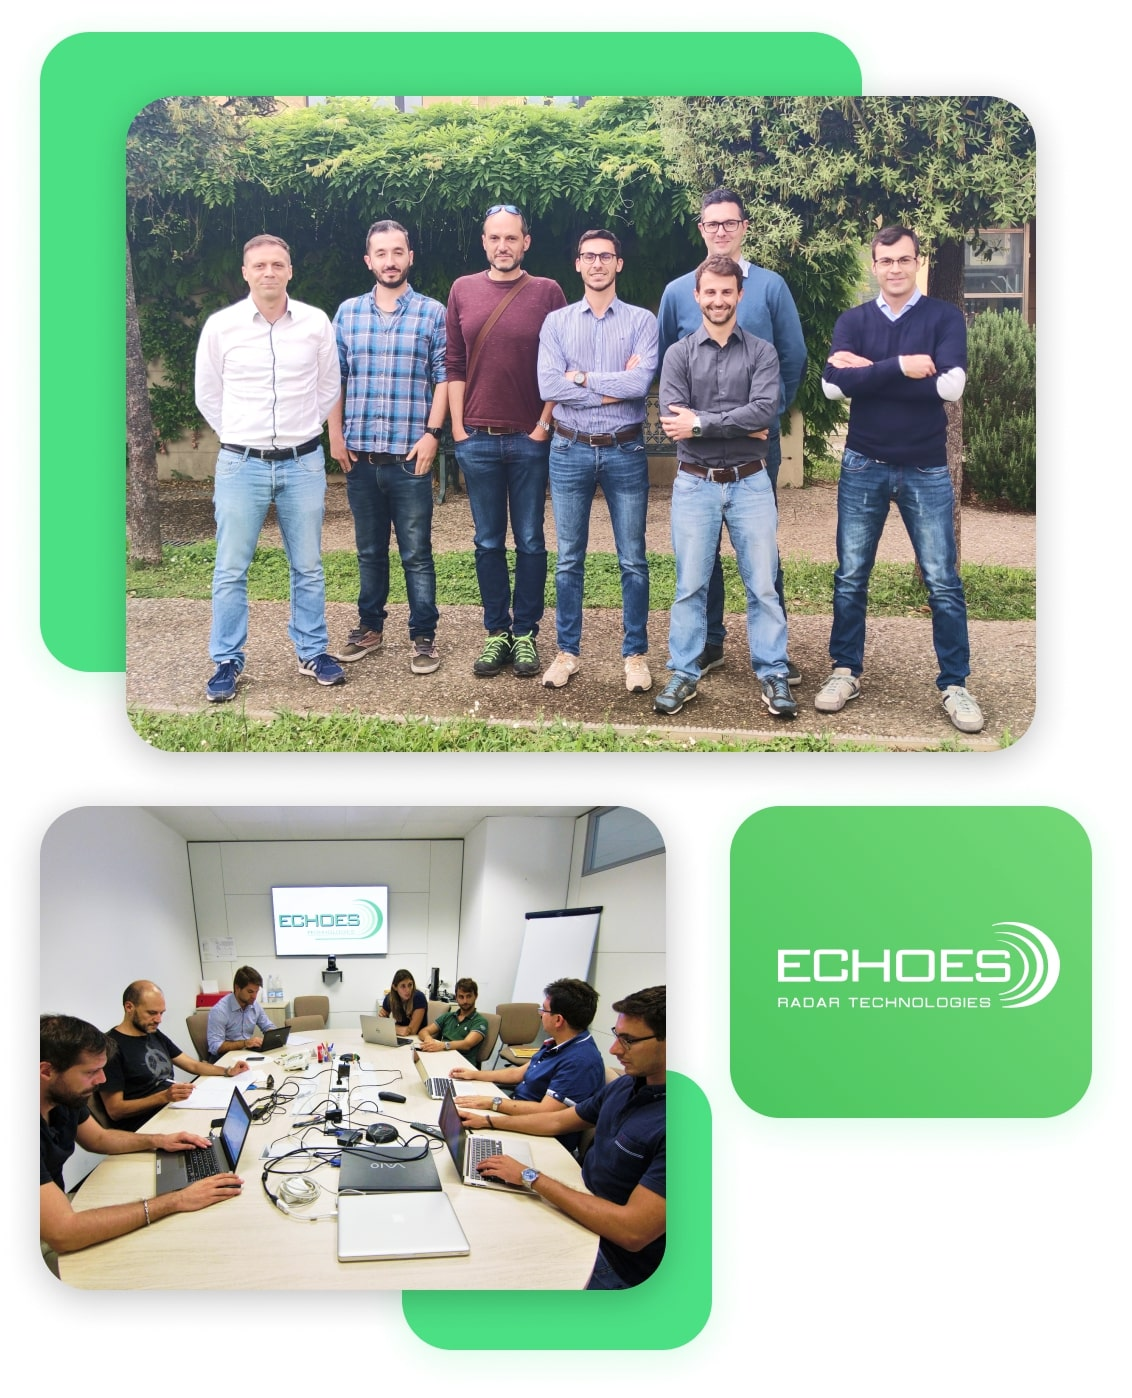 Echoes Team